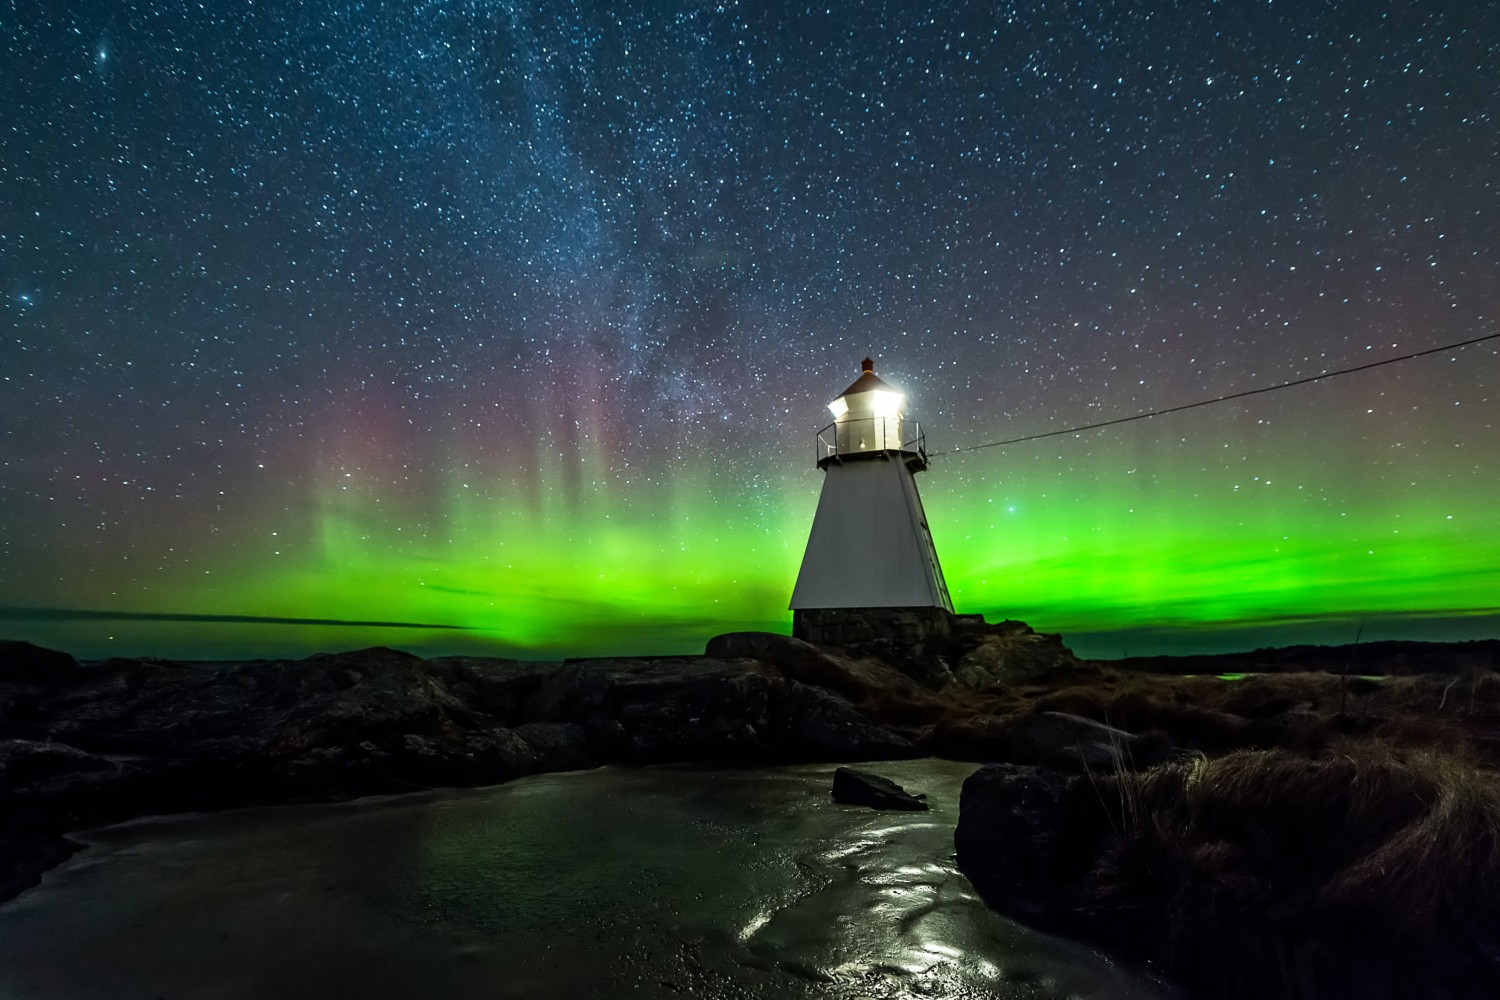 Watch The Northern Lights Come To Life In This Dramatic Timelapse